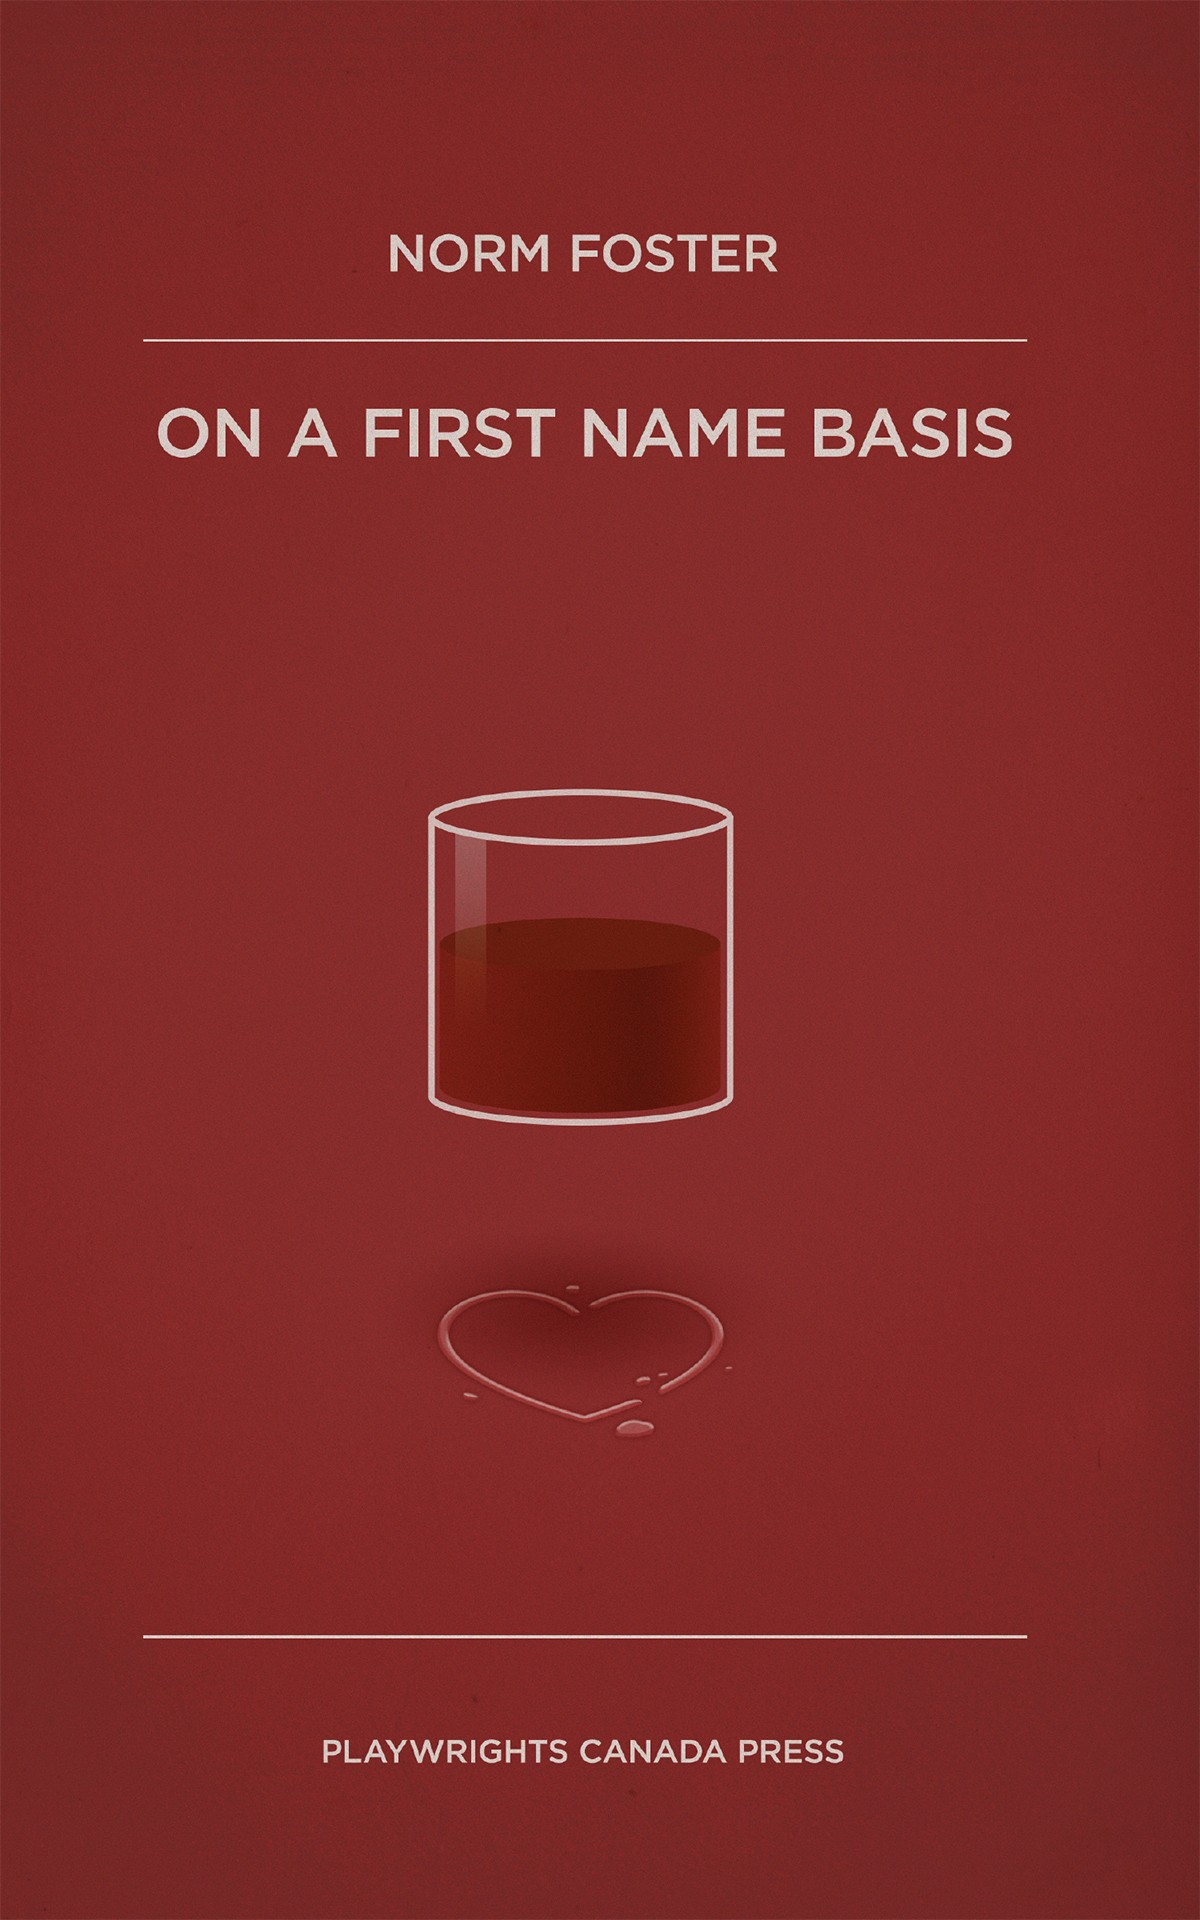 On a First Name Basis (print)